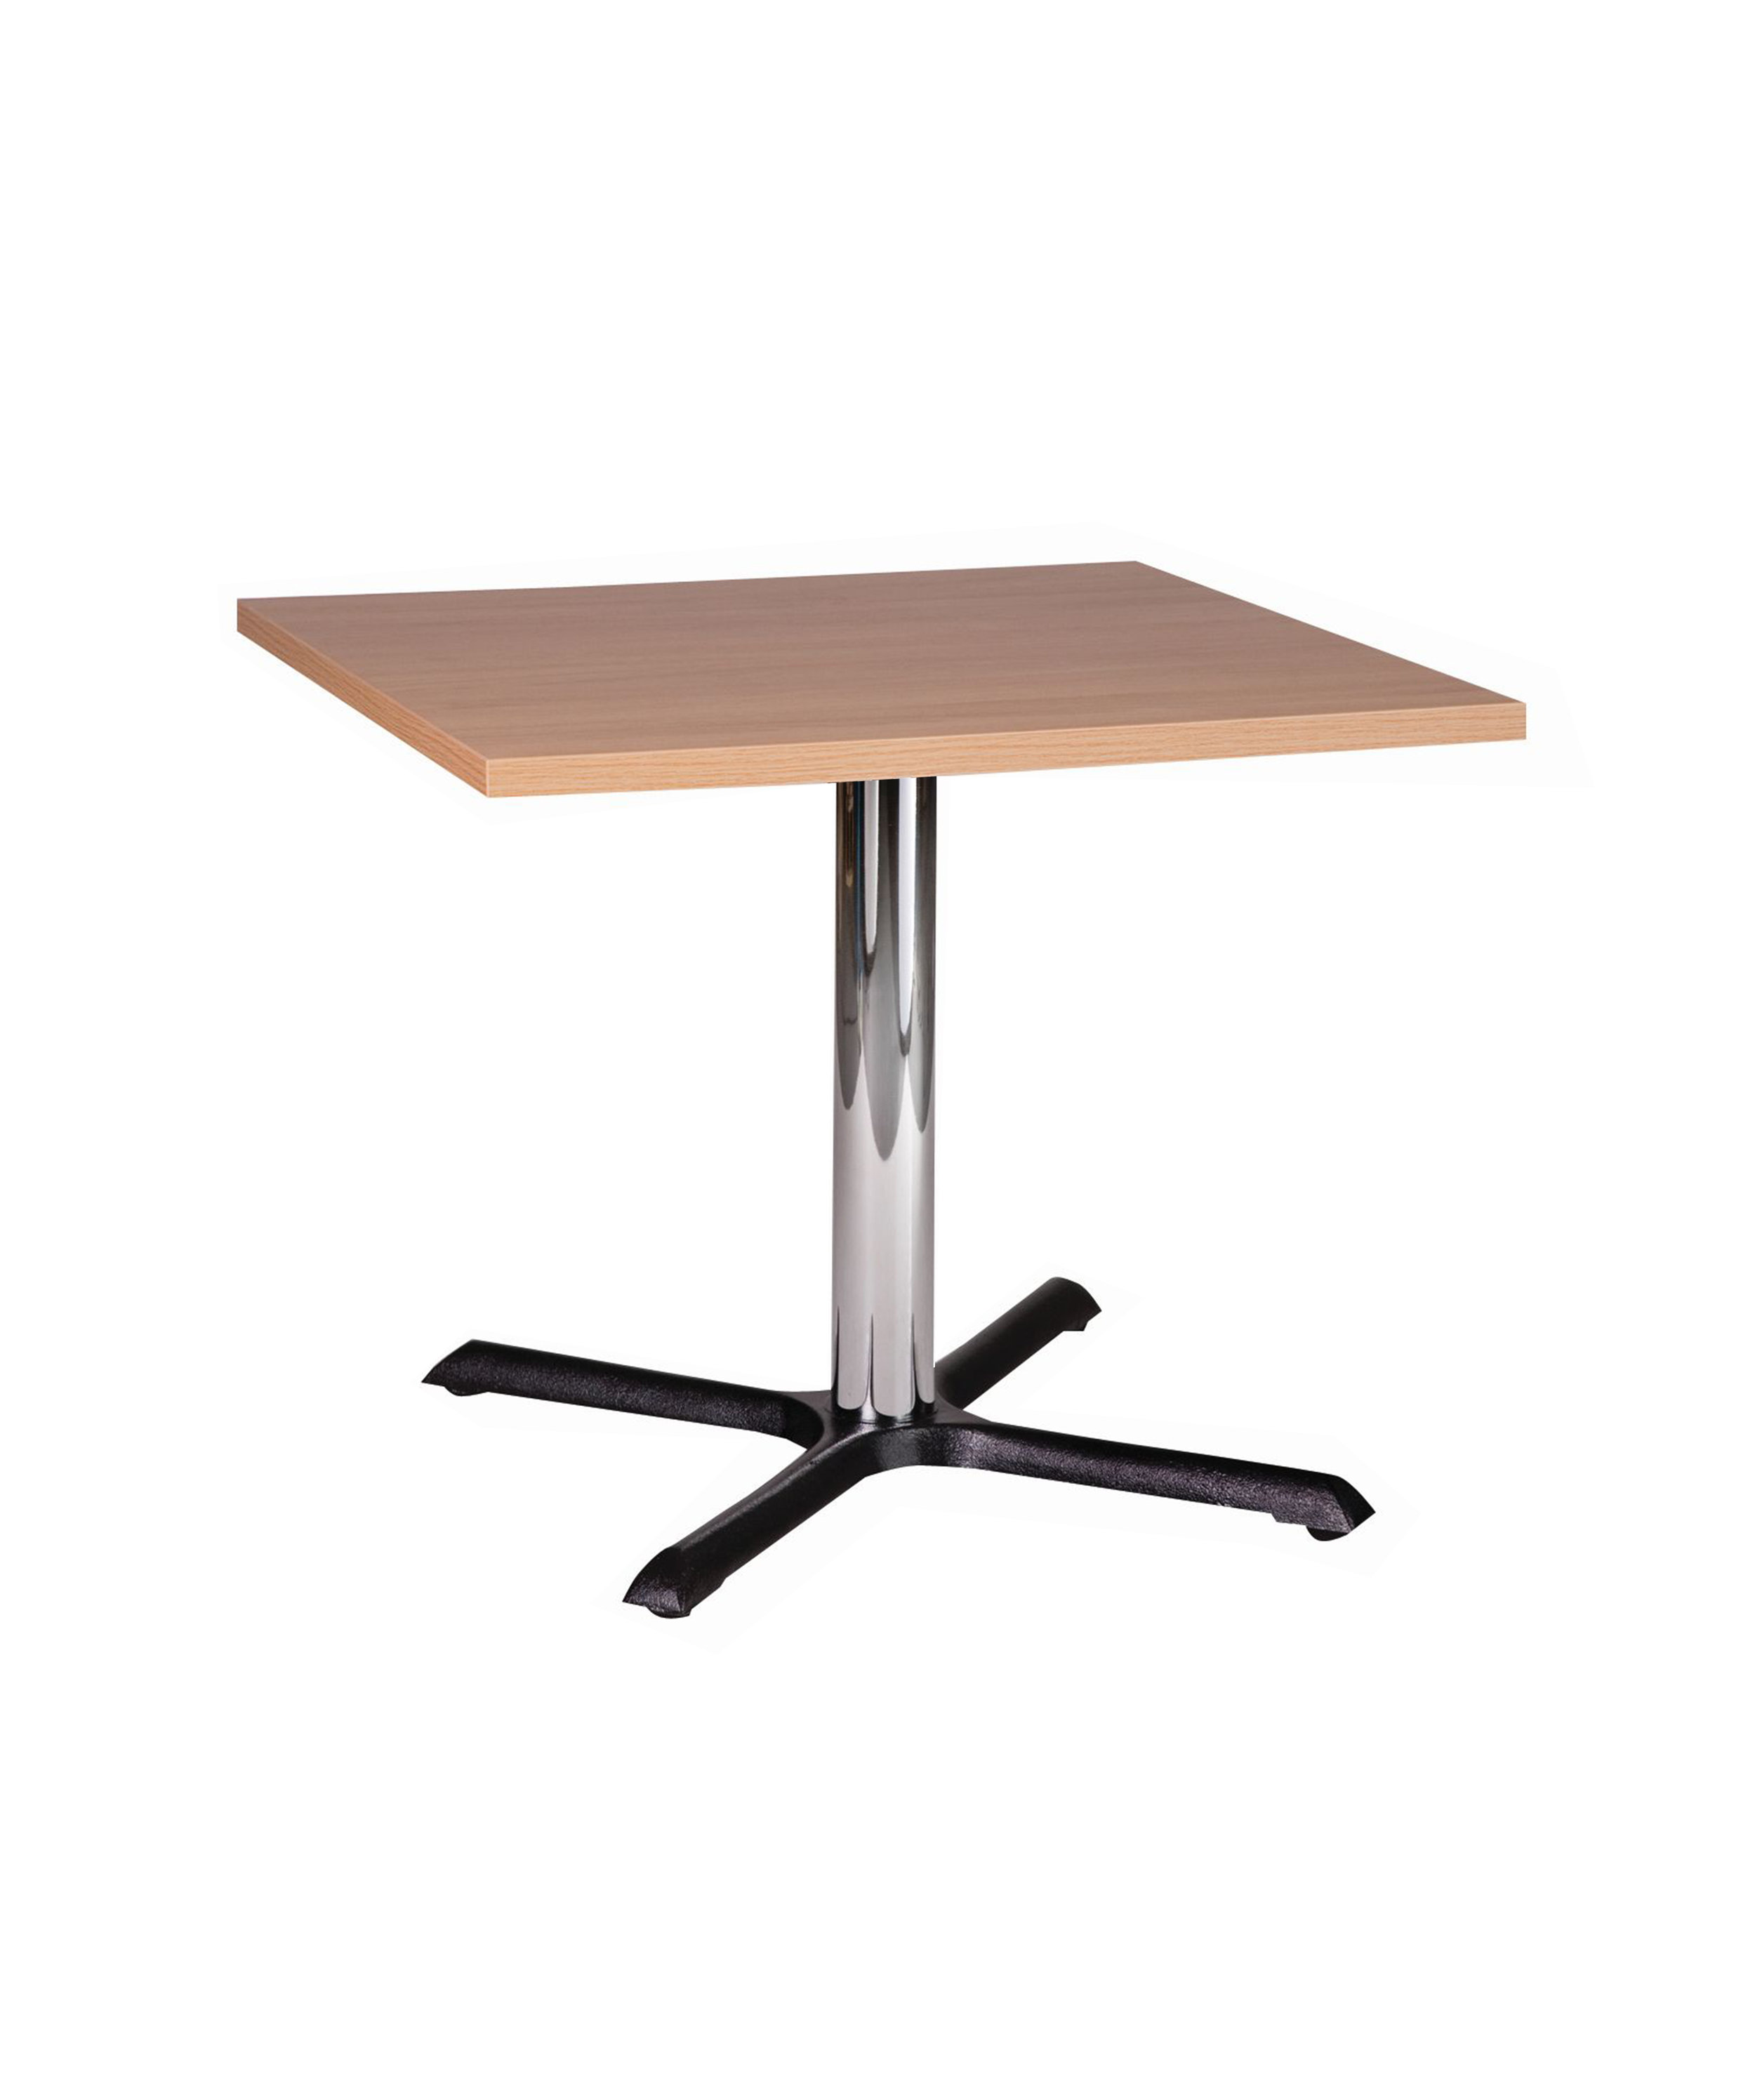 Orlando chrome dining height base with square oak top.jpg